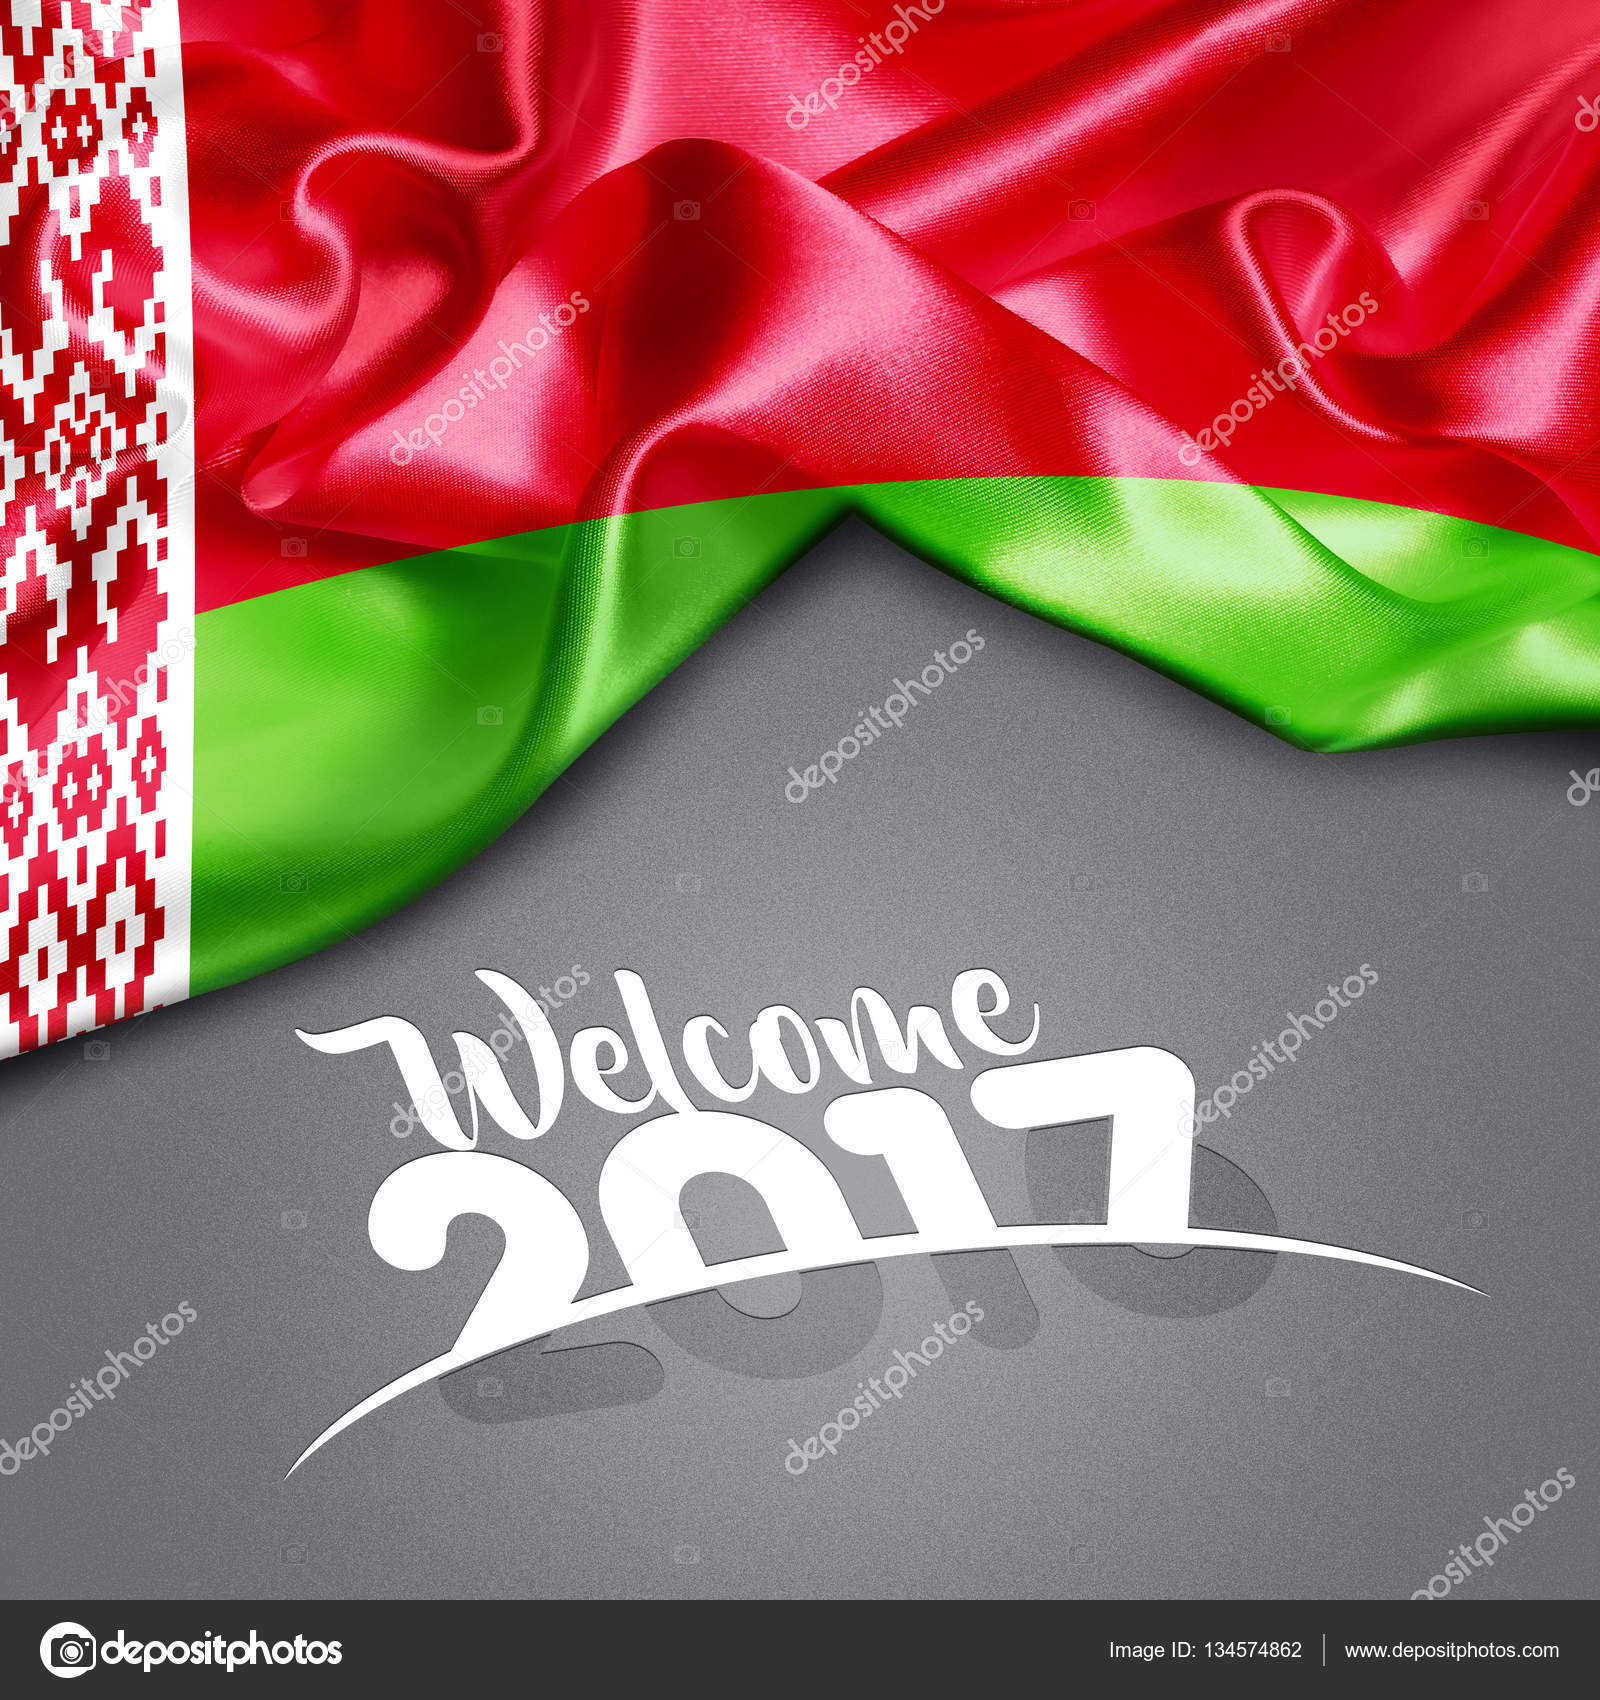 Belarus on the New Year 2017 1